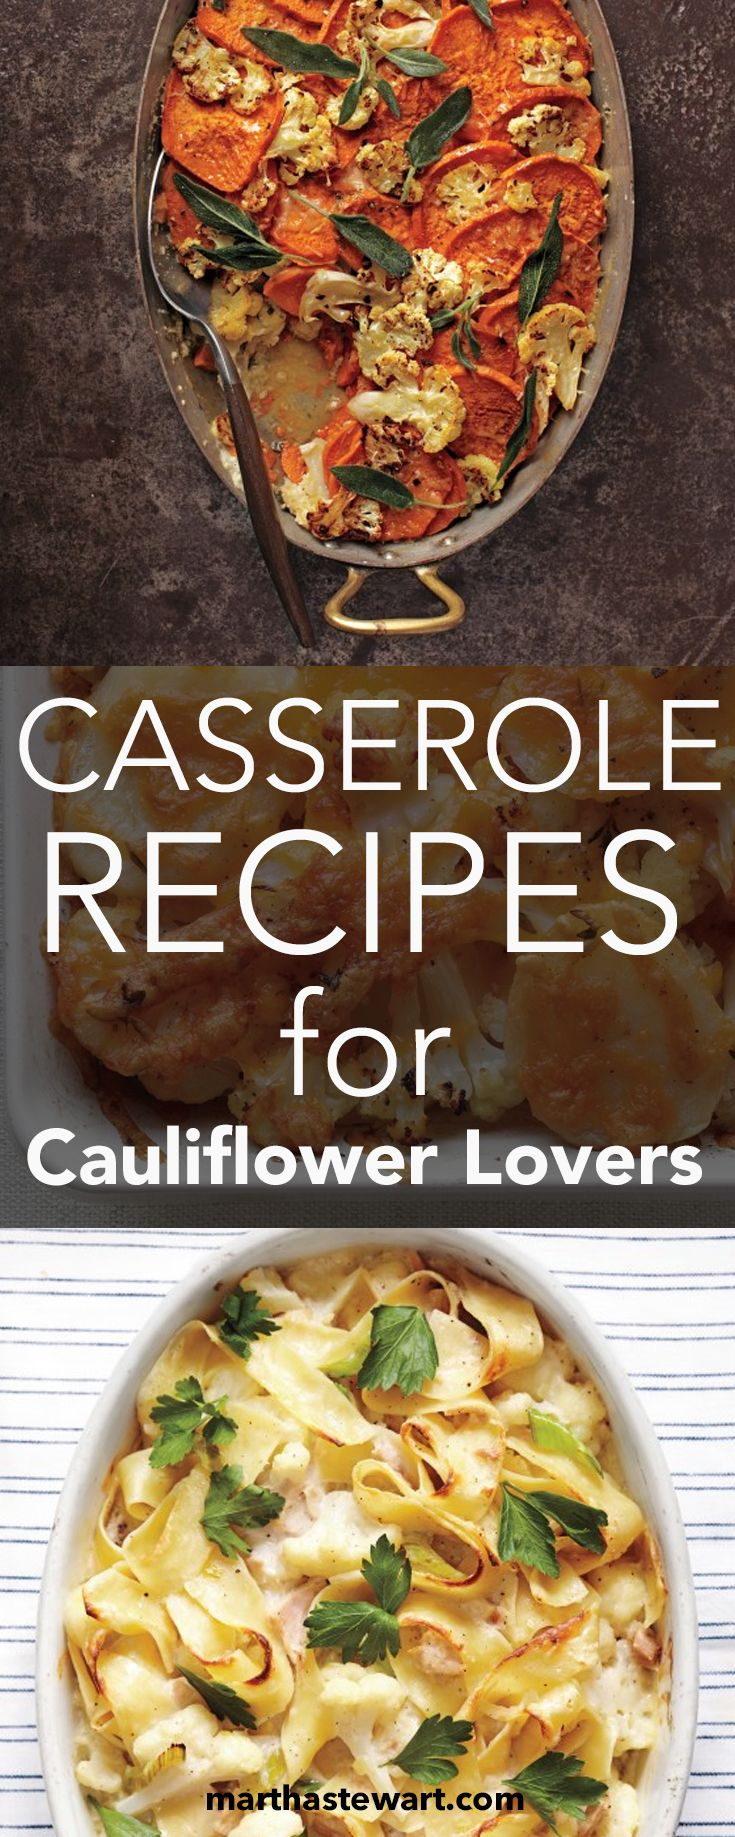 Reliable Mr. Cauliflower is one of our favorite vegetables. He's good looking (those florets!), versatile, cooks quickly, and we fans say nothing compares to that nutty, rich taste. And when it comes to casseroles, cauliflower reigns supreme. Whether it's made with cheese, sweet potatoes, or even chestnuts, this faithful brassica always makes comfort food more cozy.